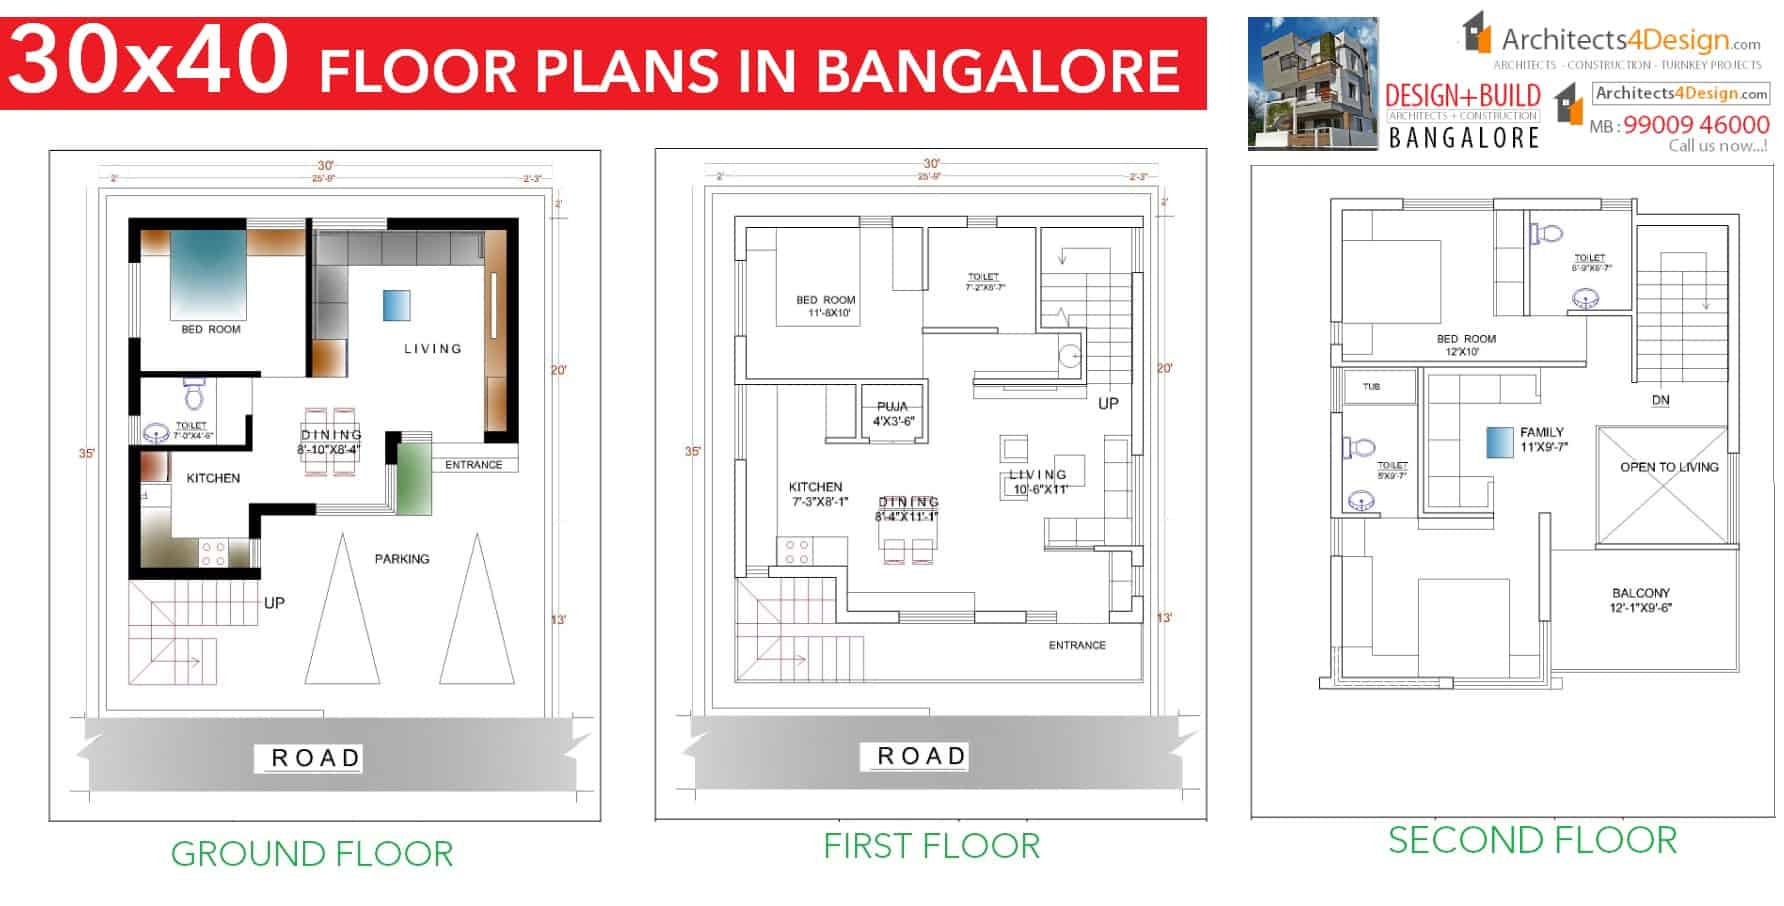 30x40 Floor Plans In Bangalore 1200 Sq Ft Floor Plans East Facing North  Facing South Facing